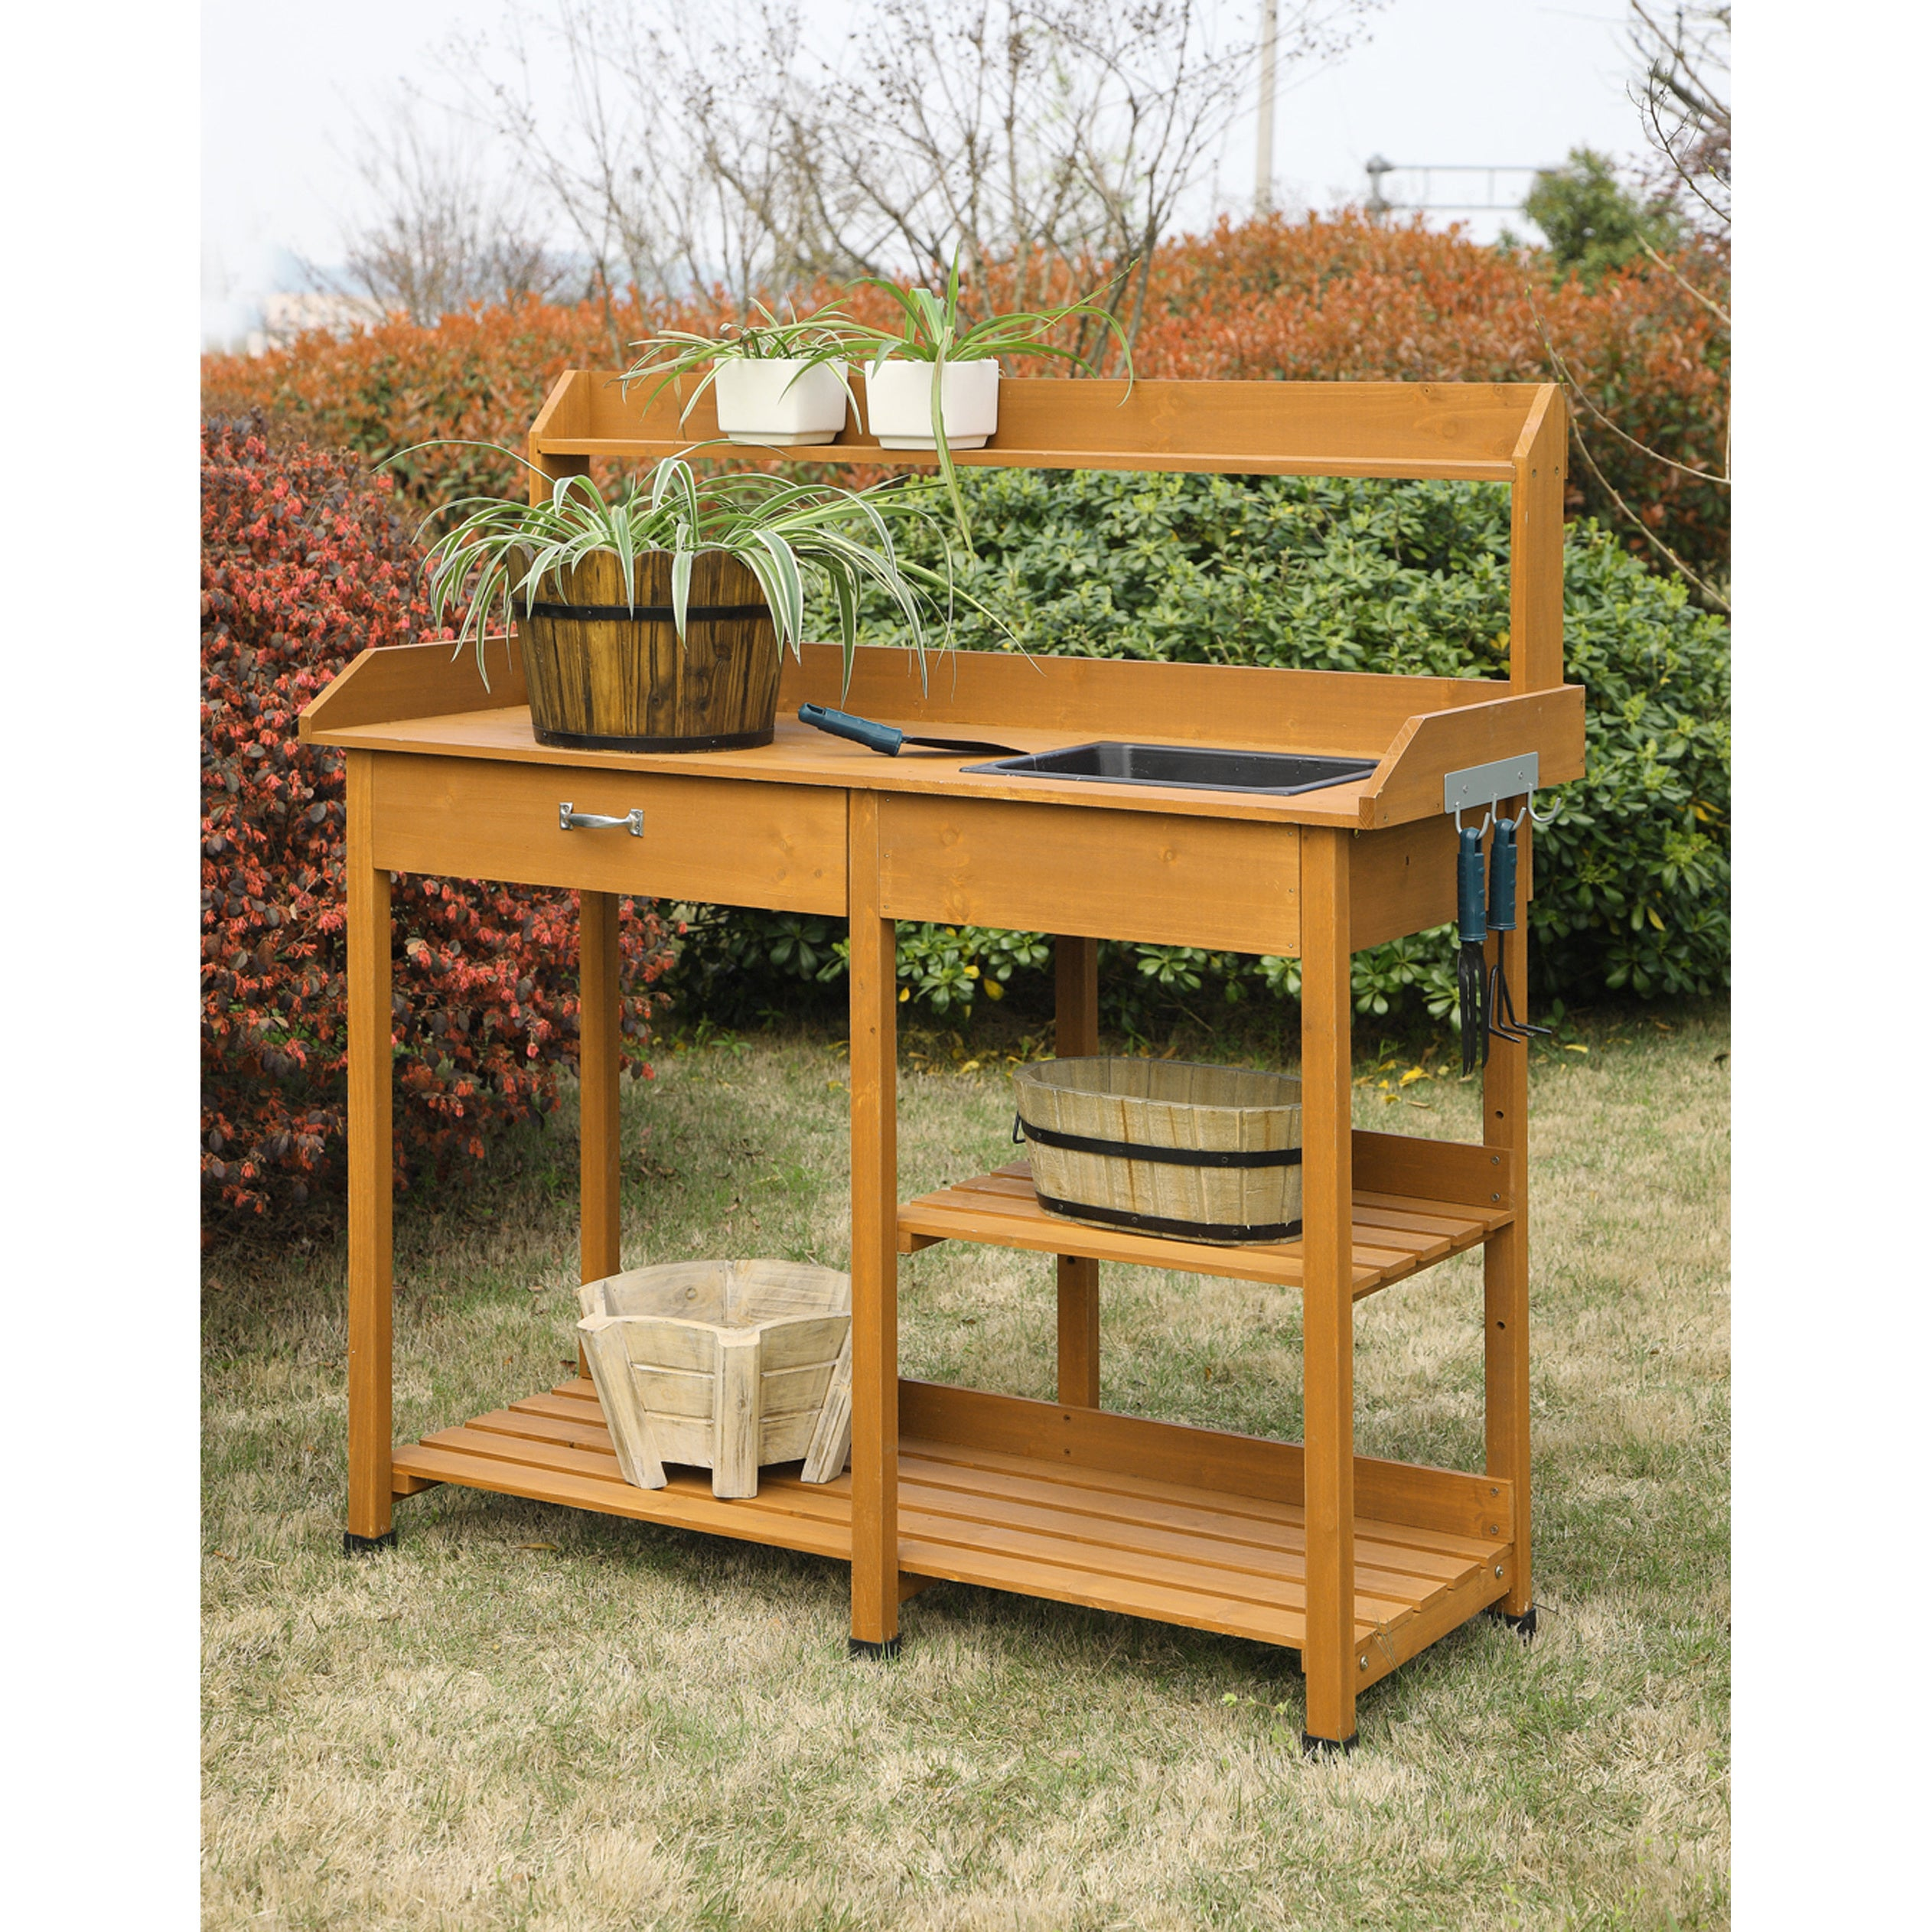 Enjoyable Convenience Concepts Deluxe Potting Bench Evergreenethics Interior Chair Design Evergreenethicsorg